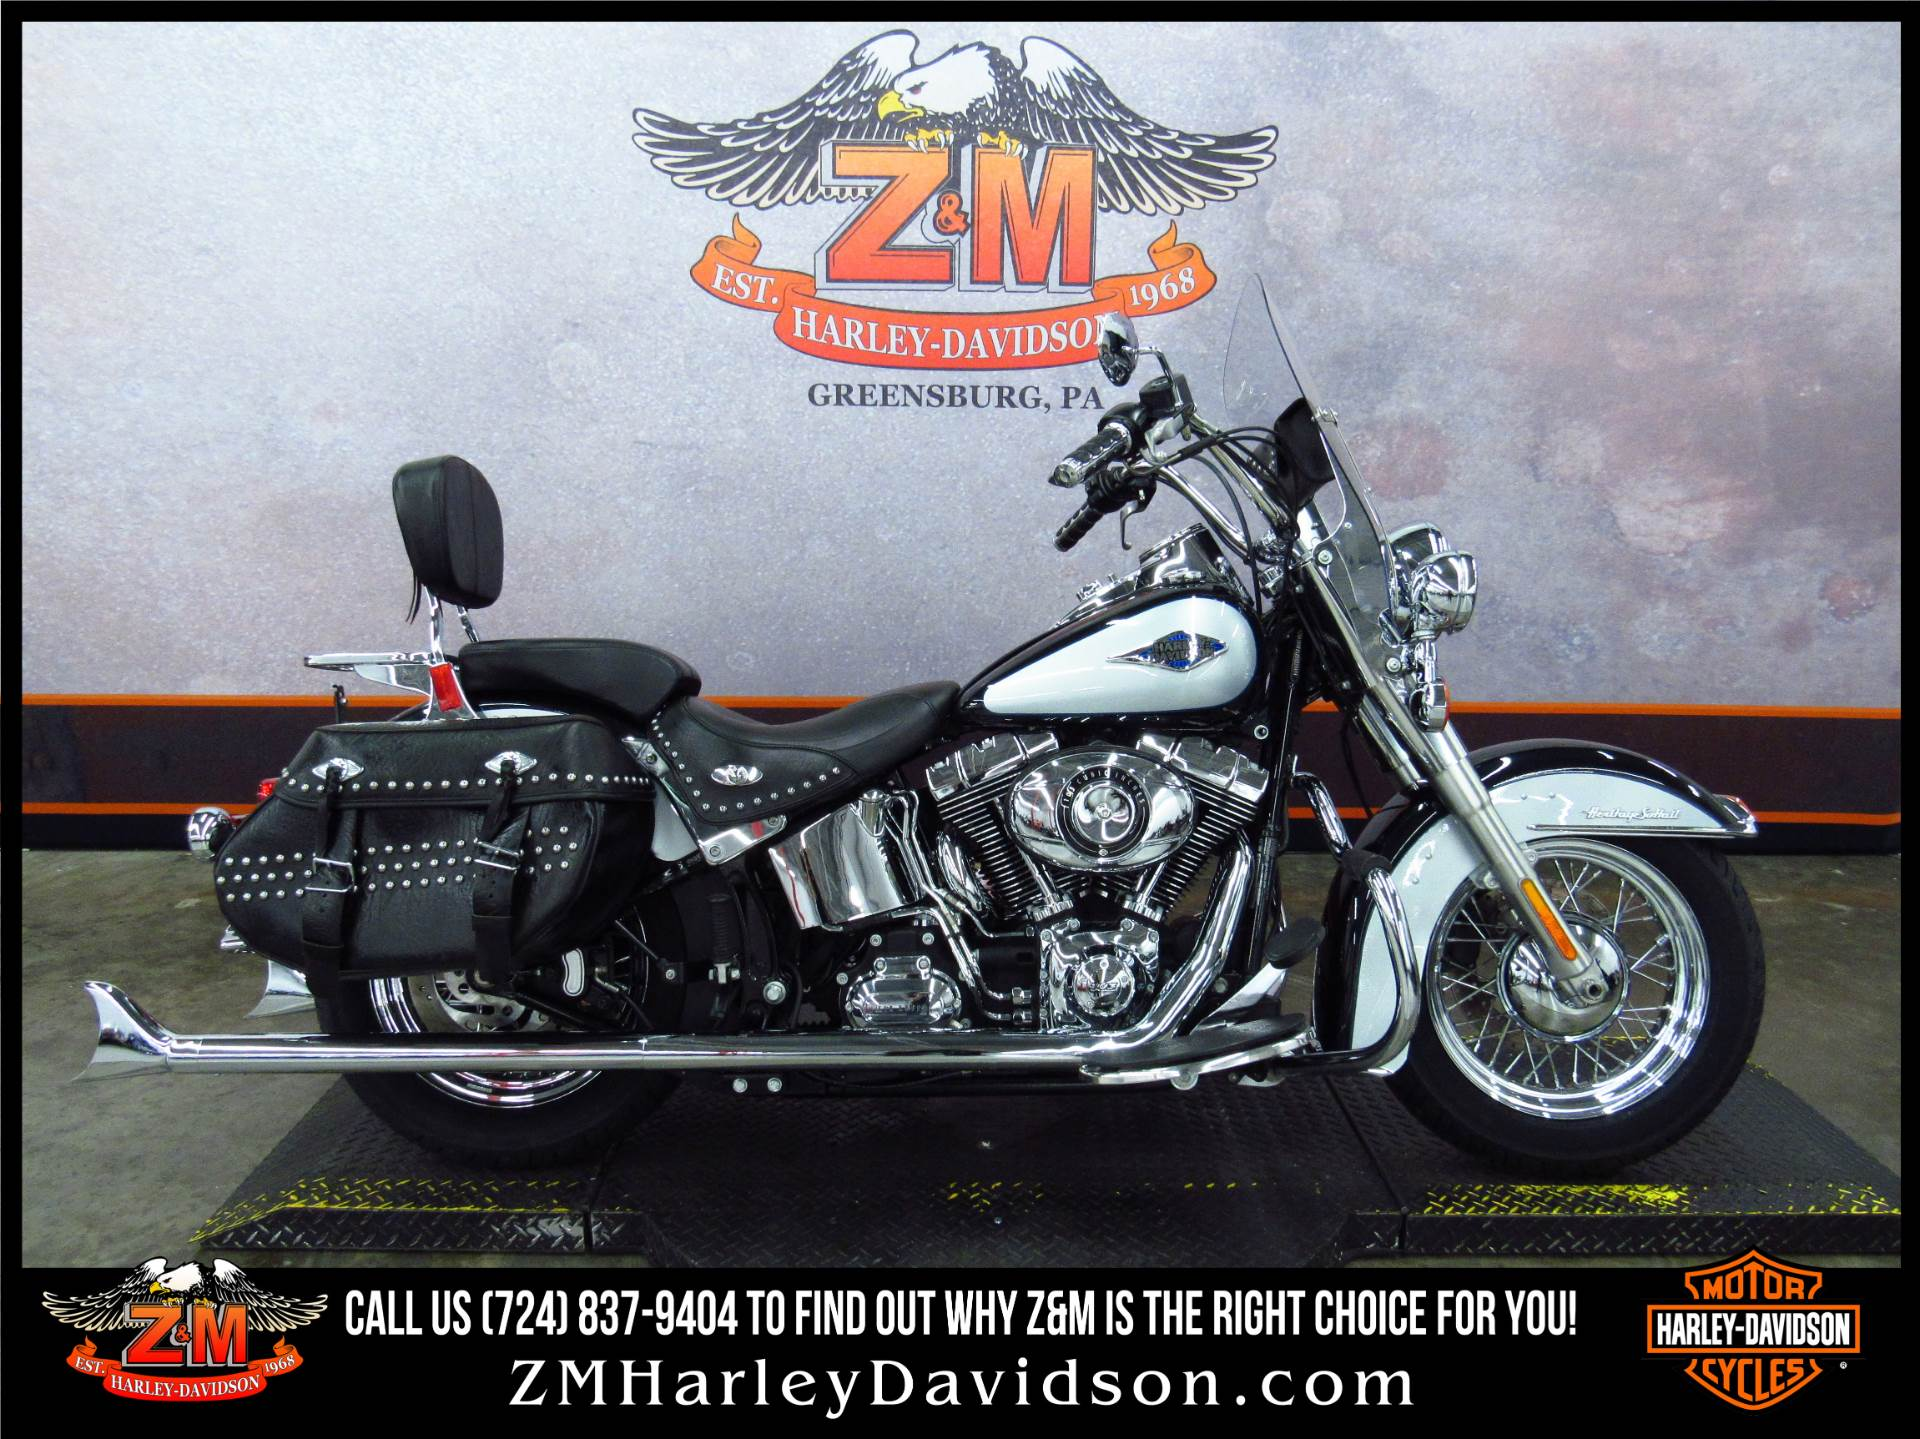 2012 Harley Davidson Heritage Softail Classic Motorcycles In Greensburg Pennsylvania